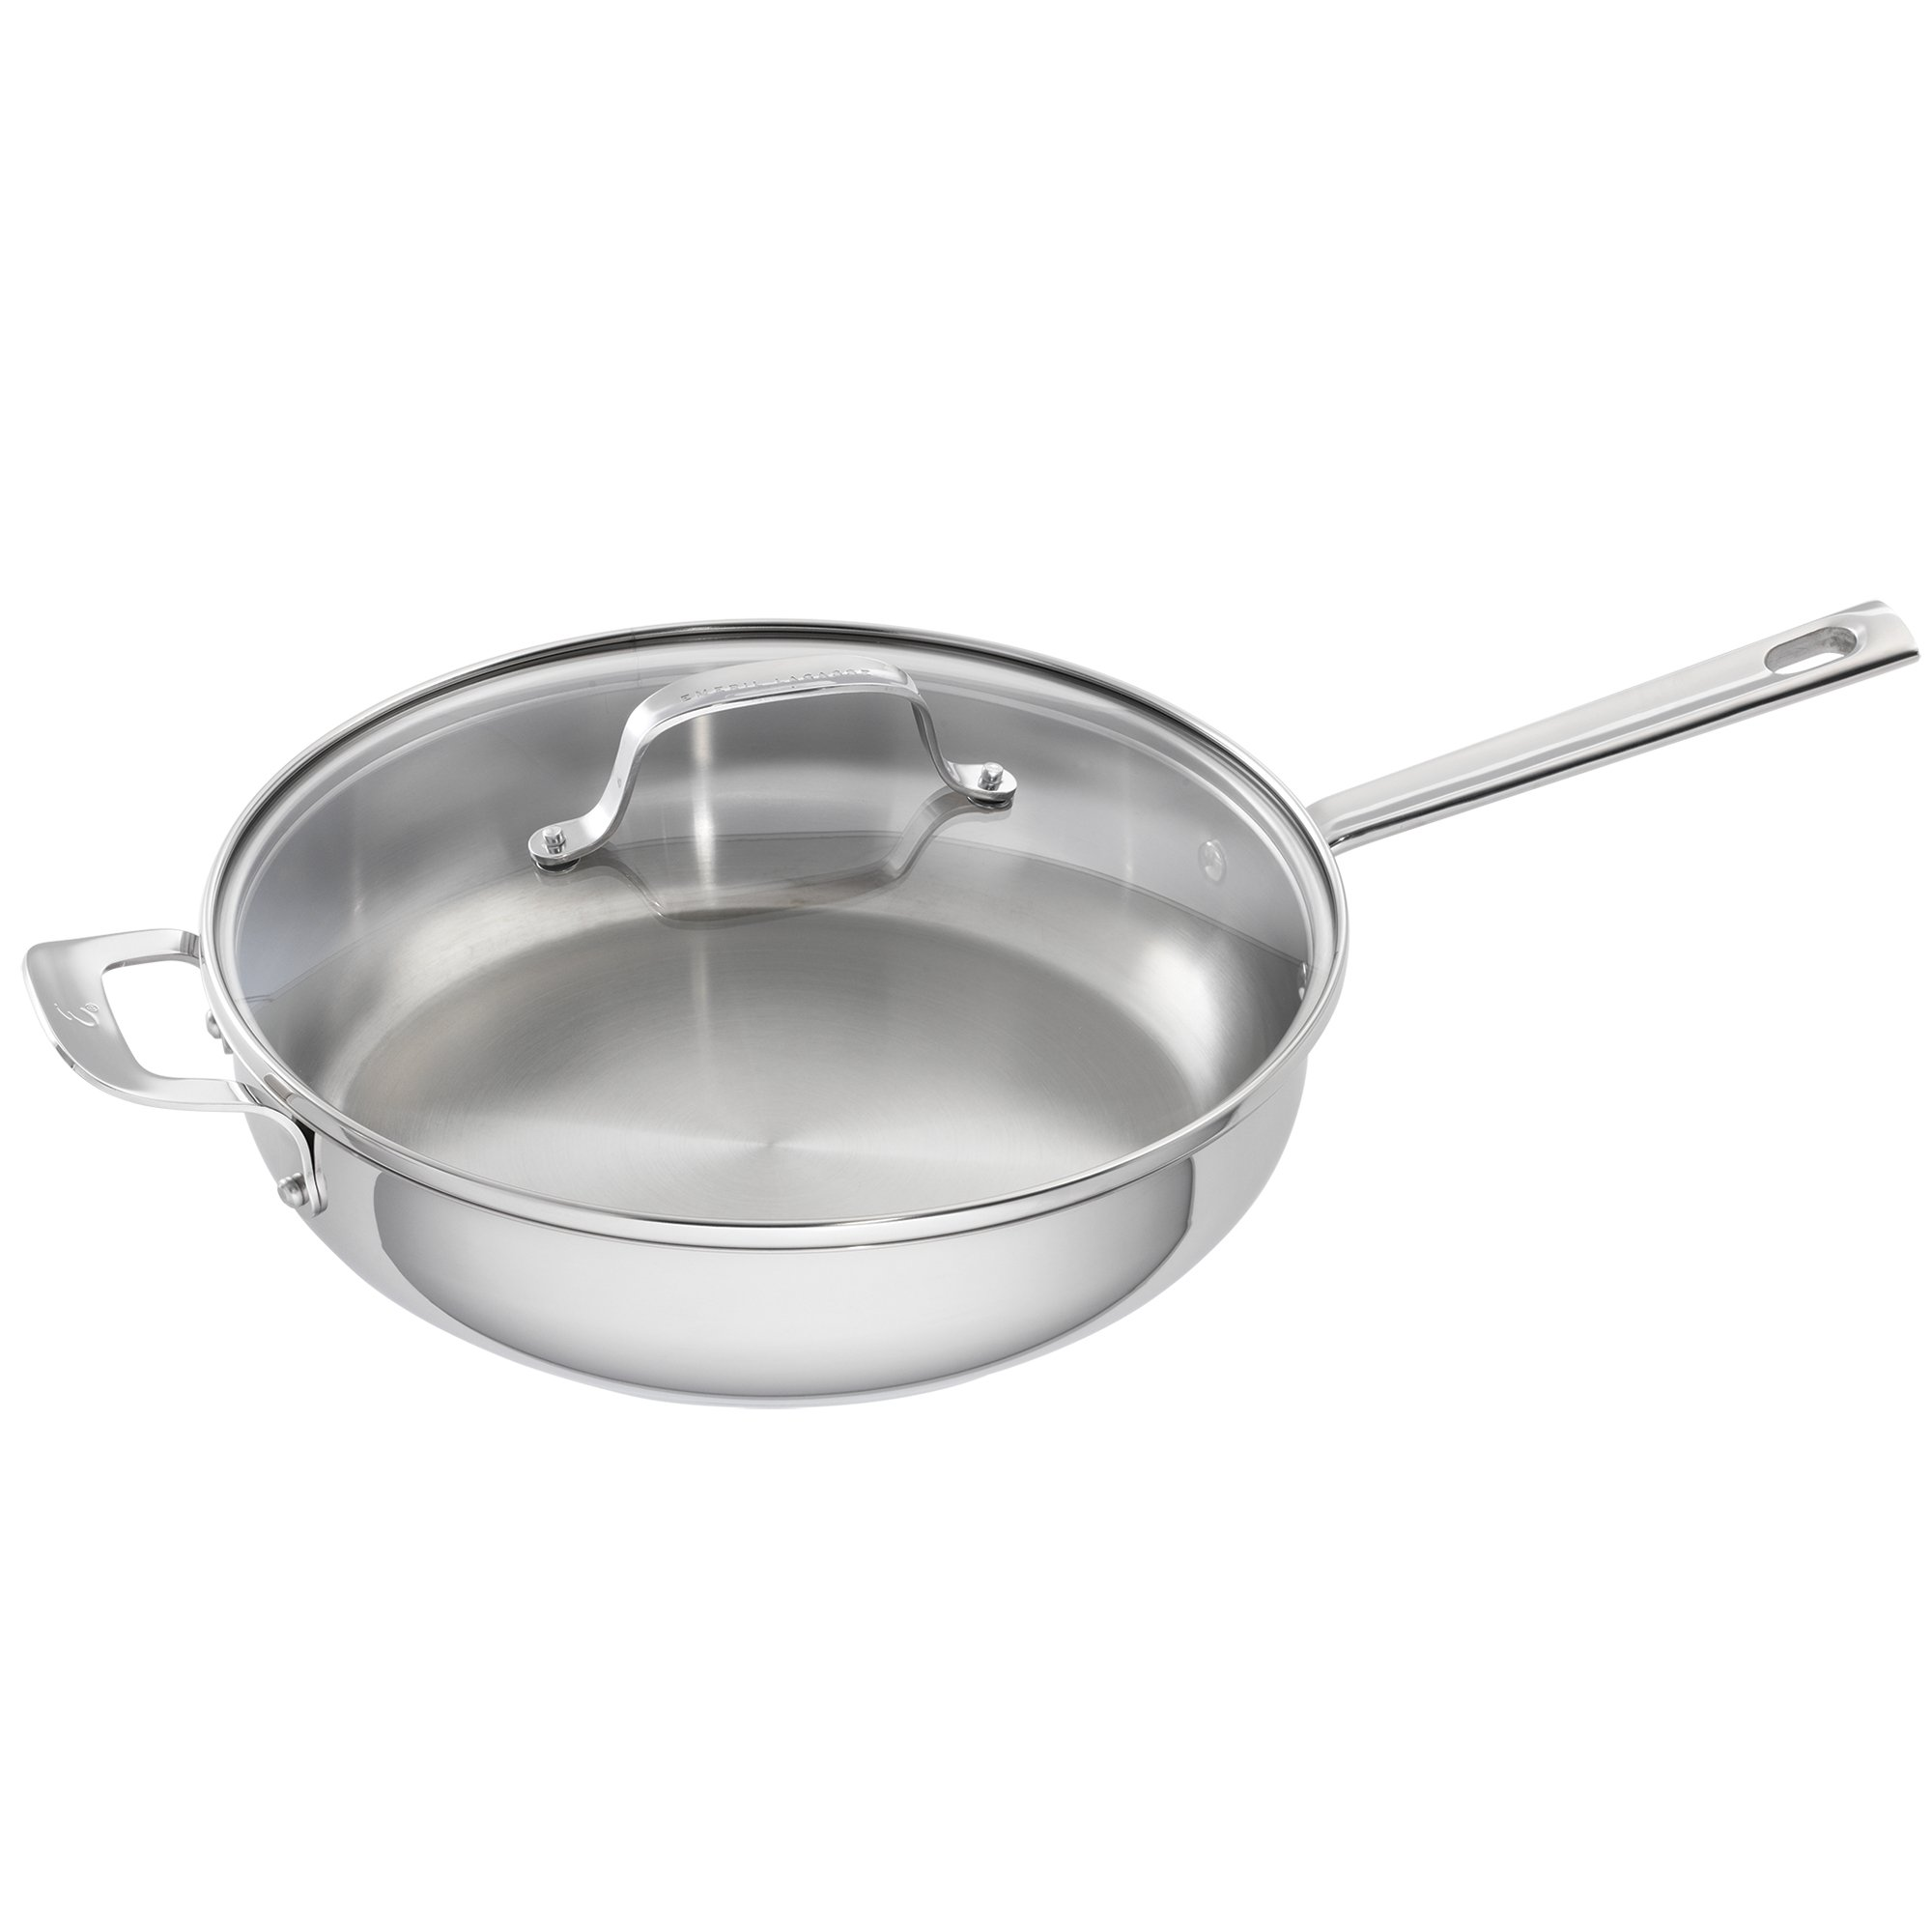 Emeril Lagasse 62957 Stainless Steel Covered Deep Sauté Pan, 5-Quart, Silver